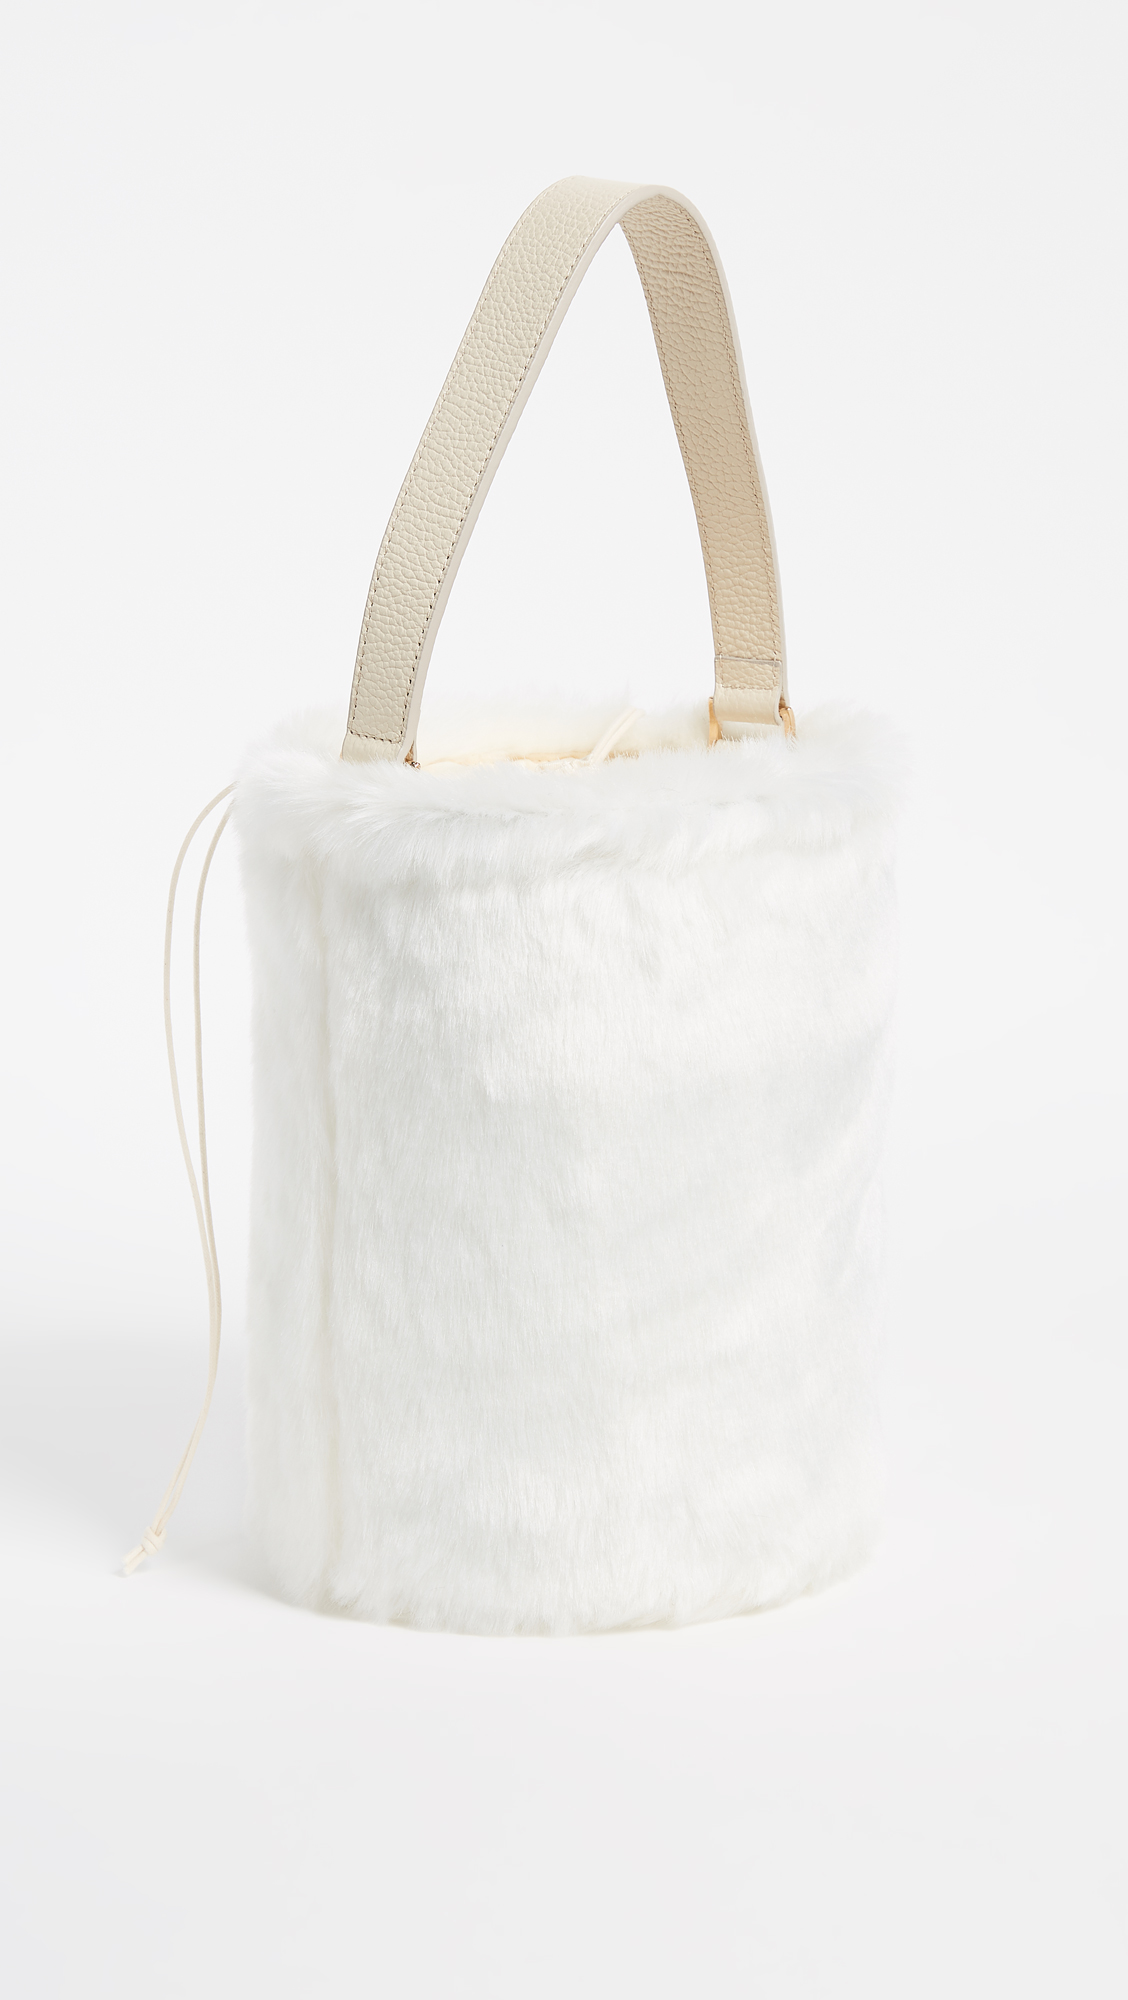 452d2ed056 Caterina Bertini Faux Fur Bucket Bag